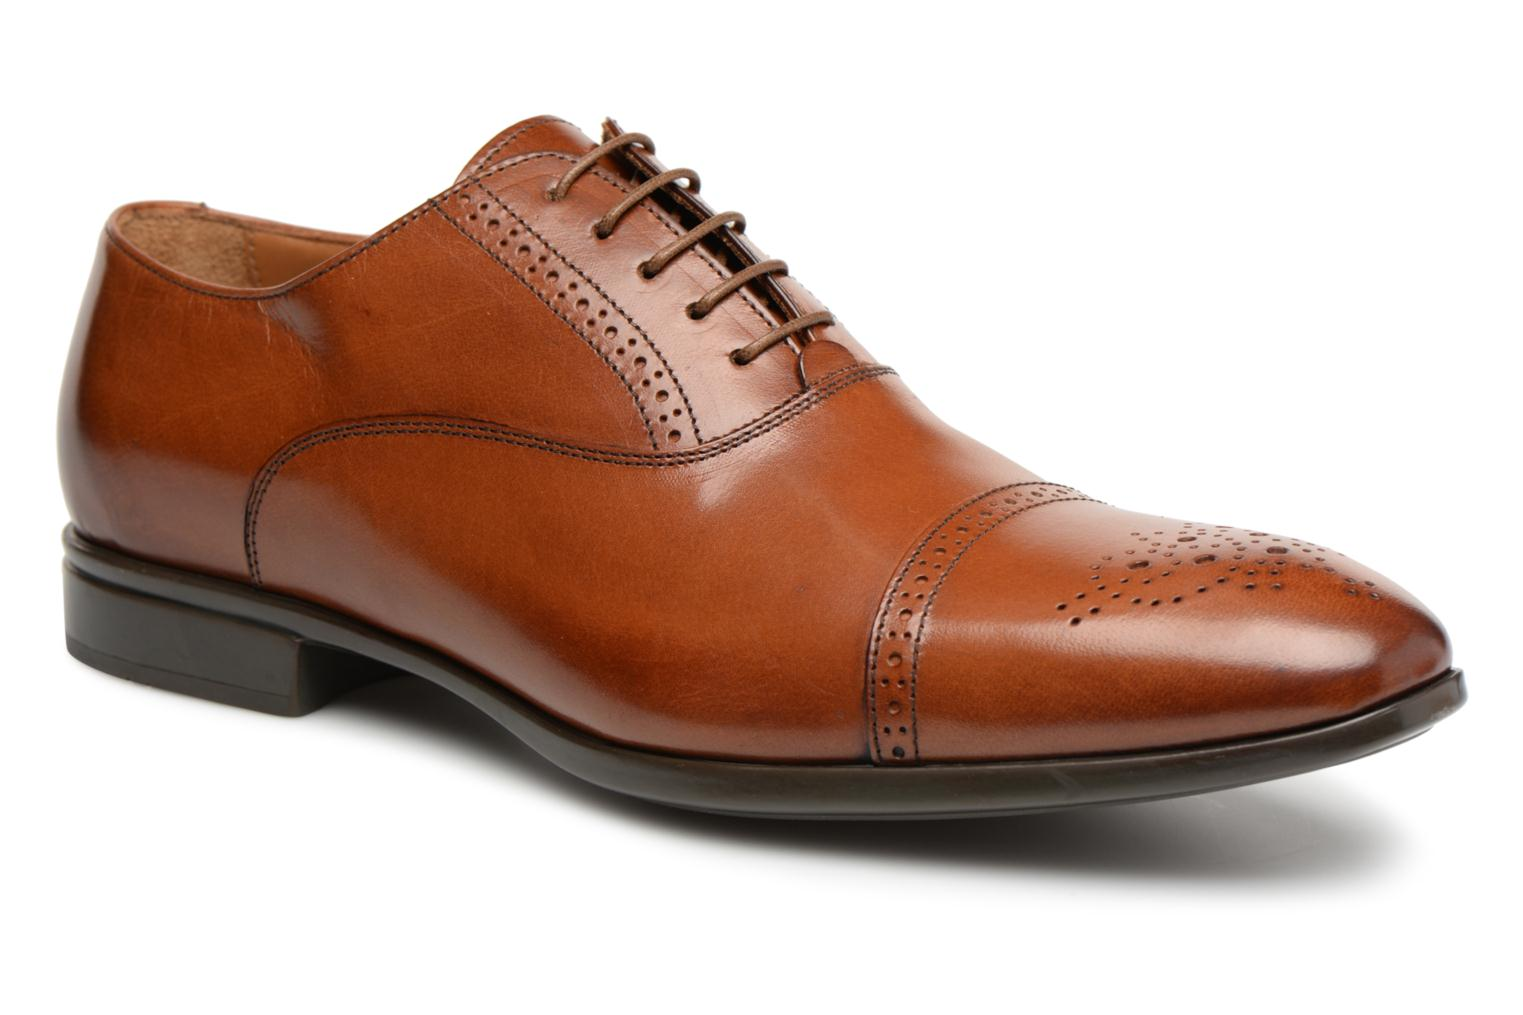 Marques Chaussure luxe homme Doucal's homme OTELLO POLO CHASTAGNE